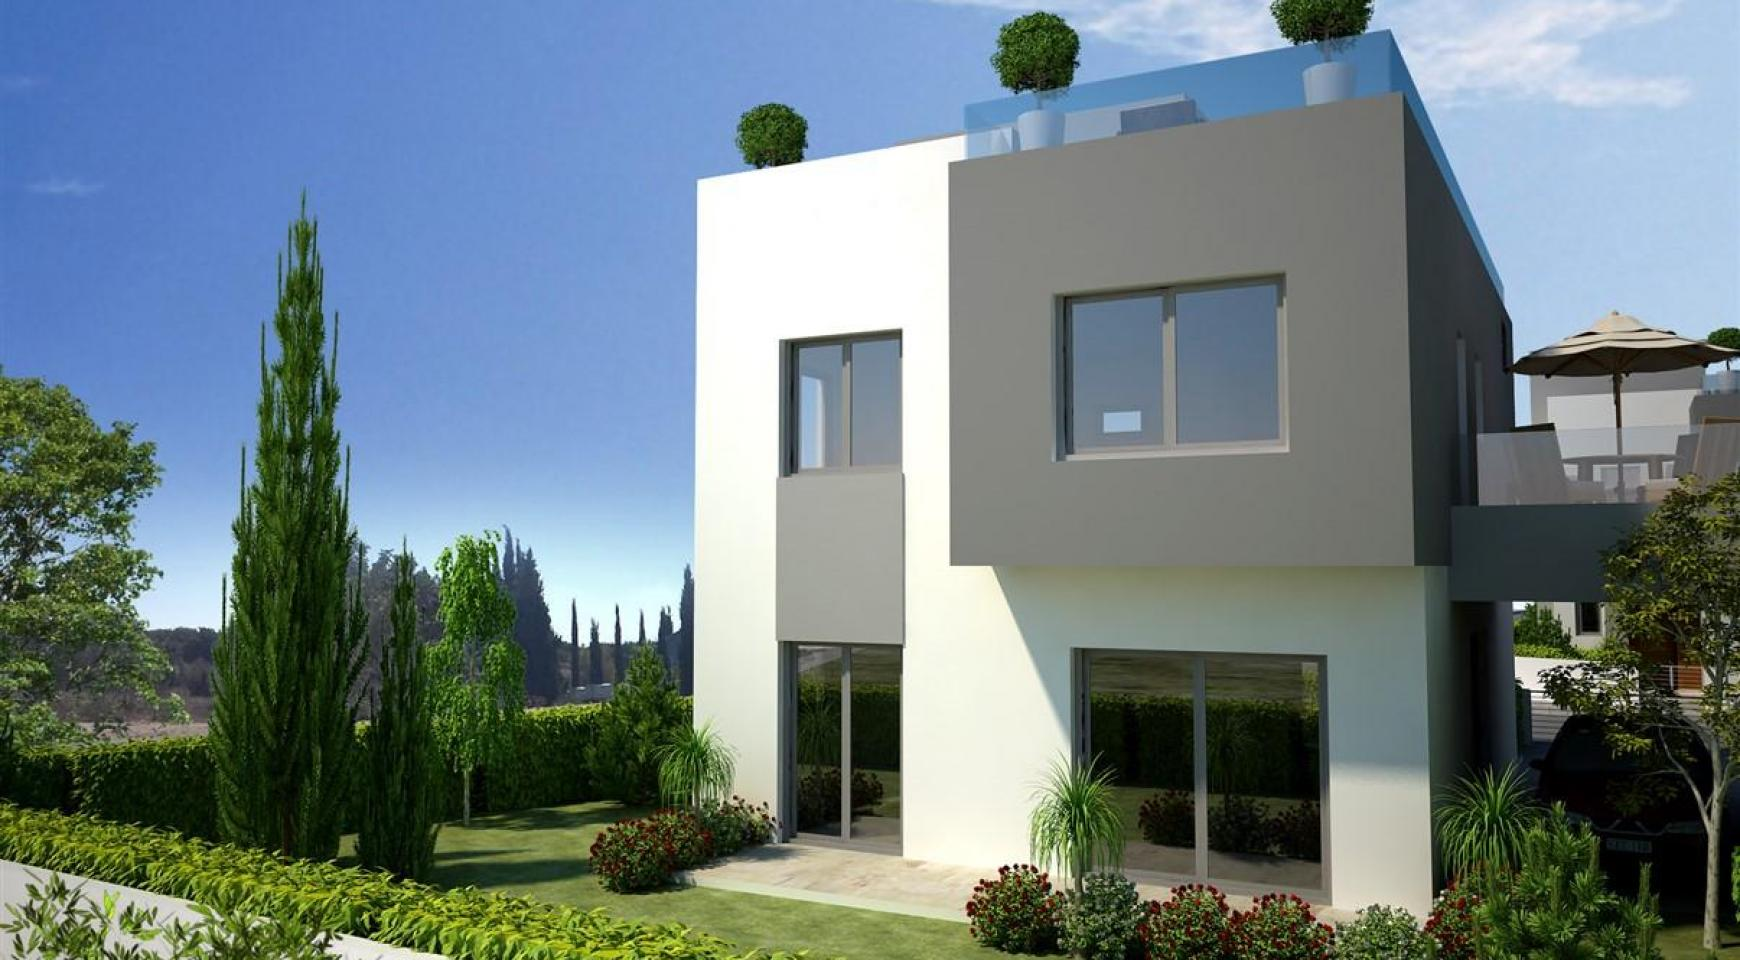 3 Bedroom Villa in New Project in Paphos - 30